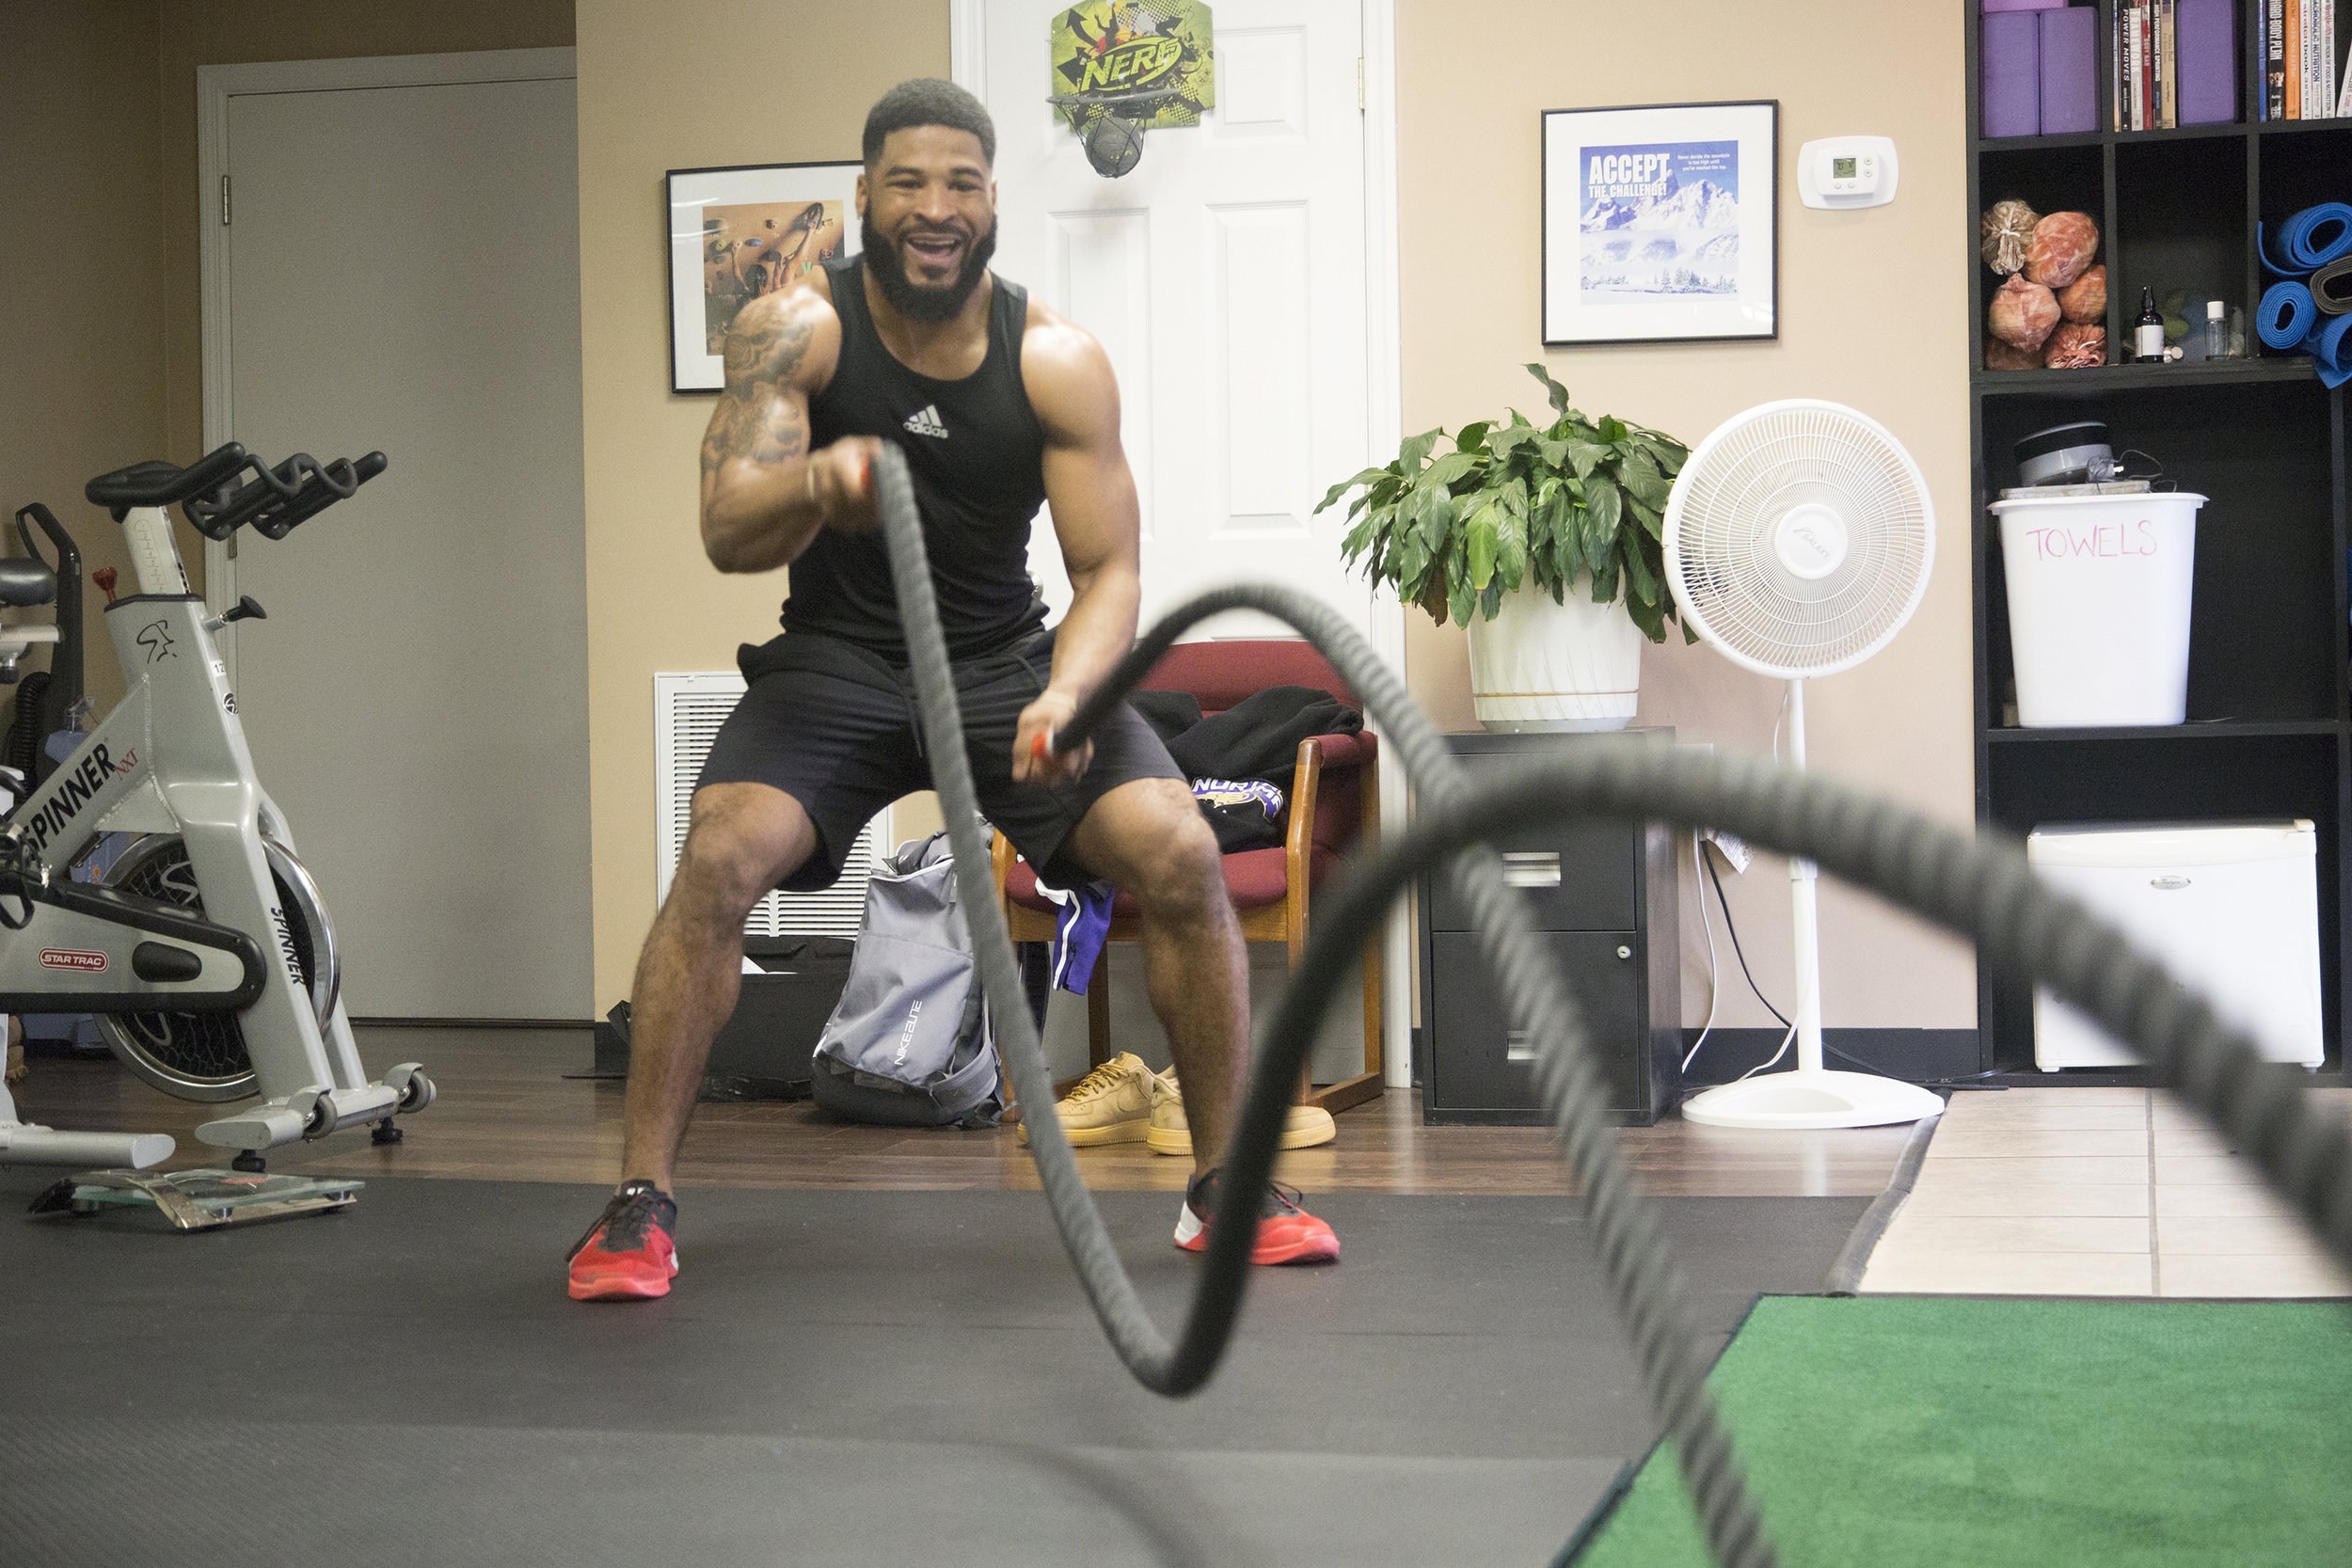 2018-3-29 NFL Prospect Dre Hall at Columbia Mid South 5 Fitness 04.jpg